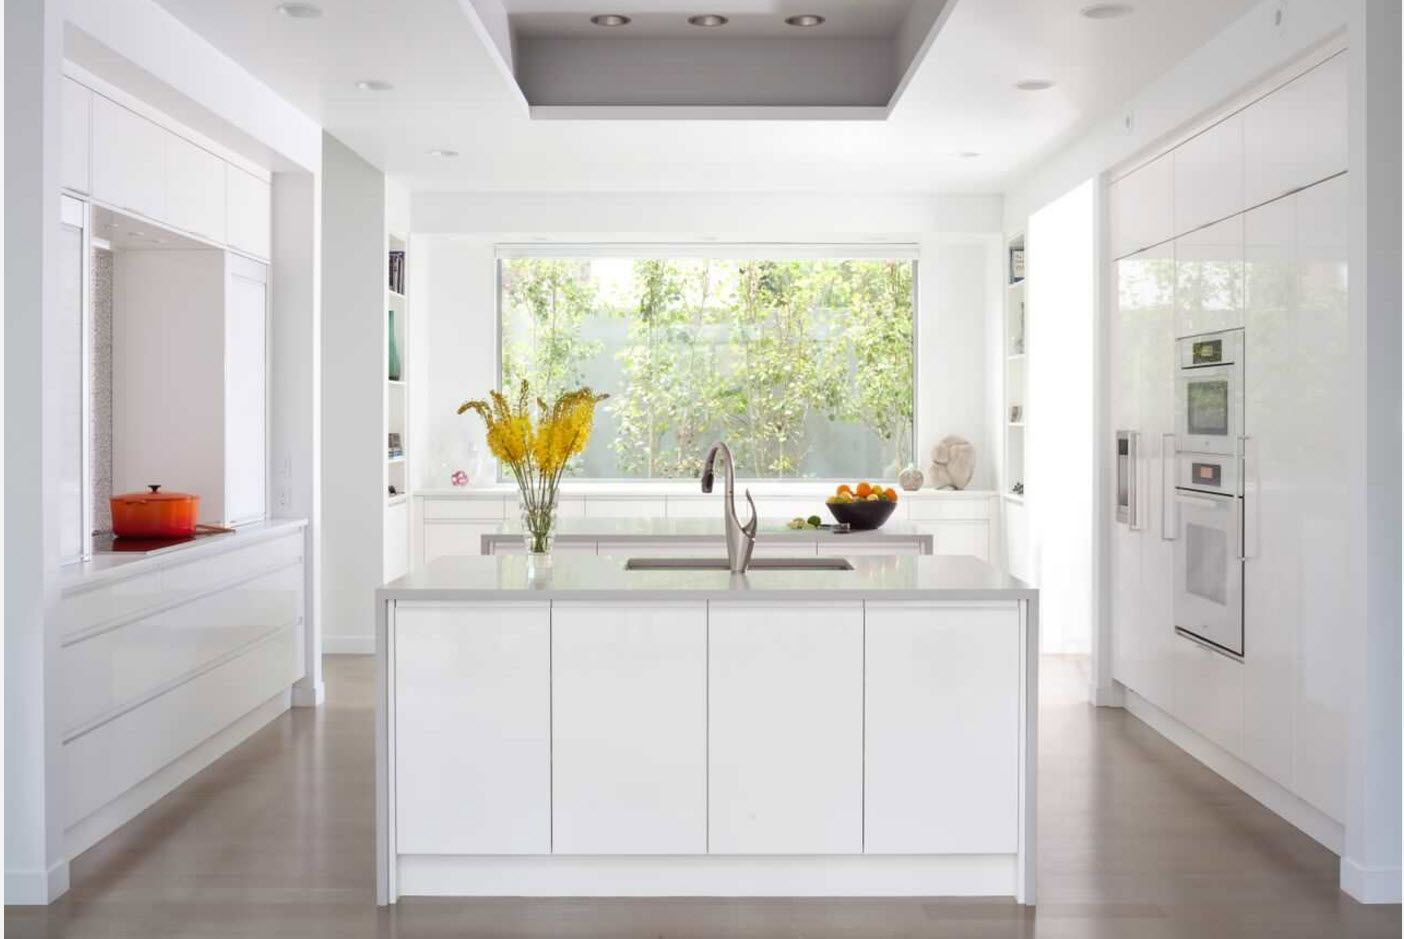 Kitchen Fashion Trends & Interior Design Ideas 2017. White inner atmosphere with the center island and large ceiling extractor hood